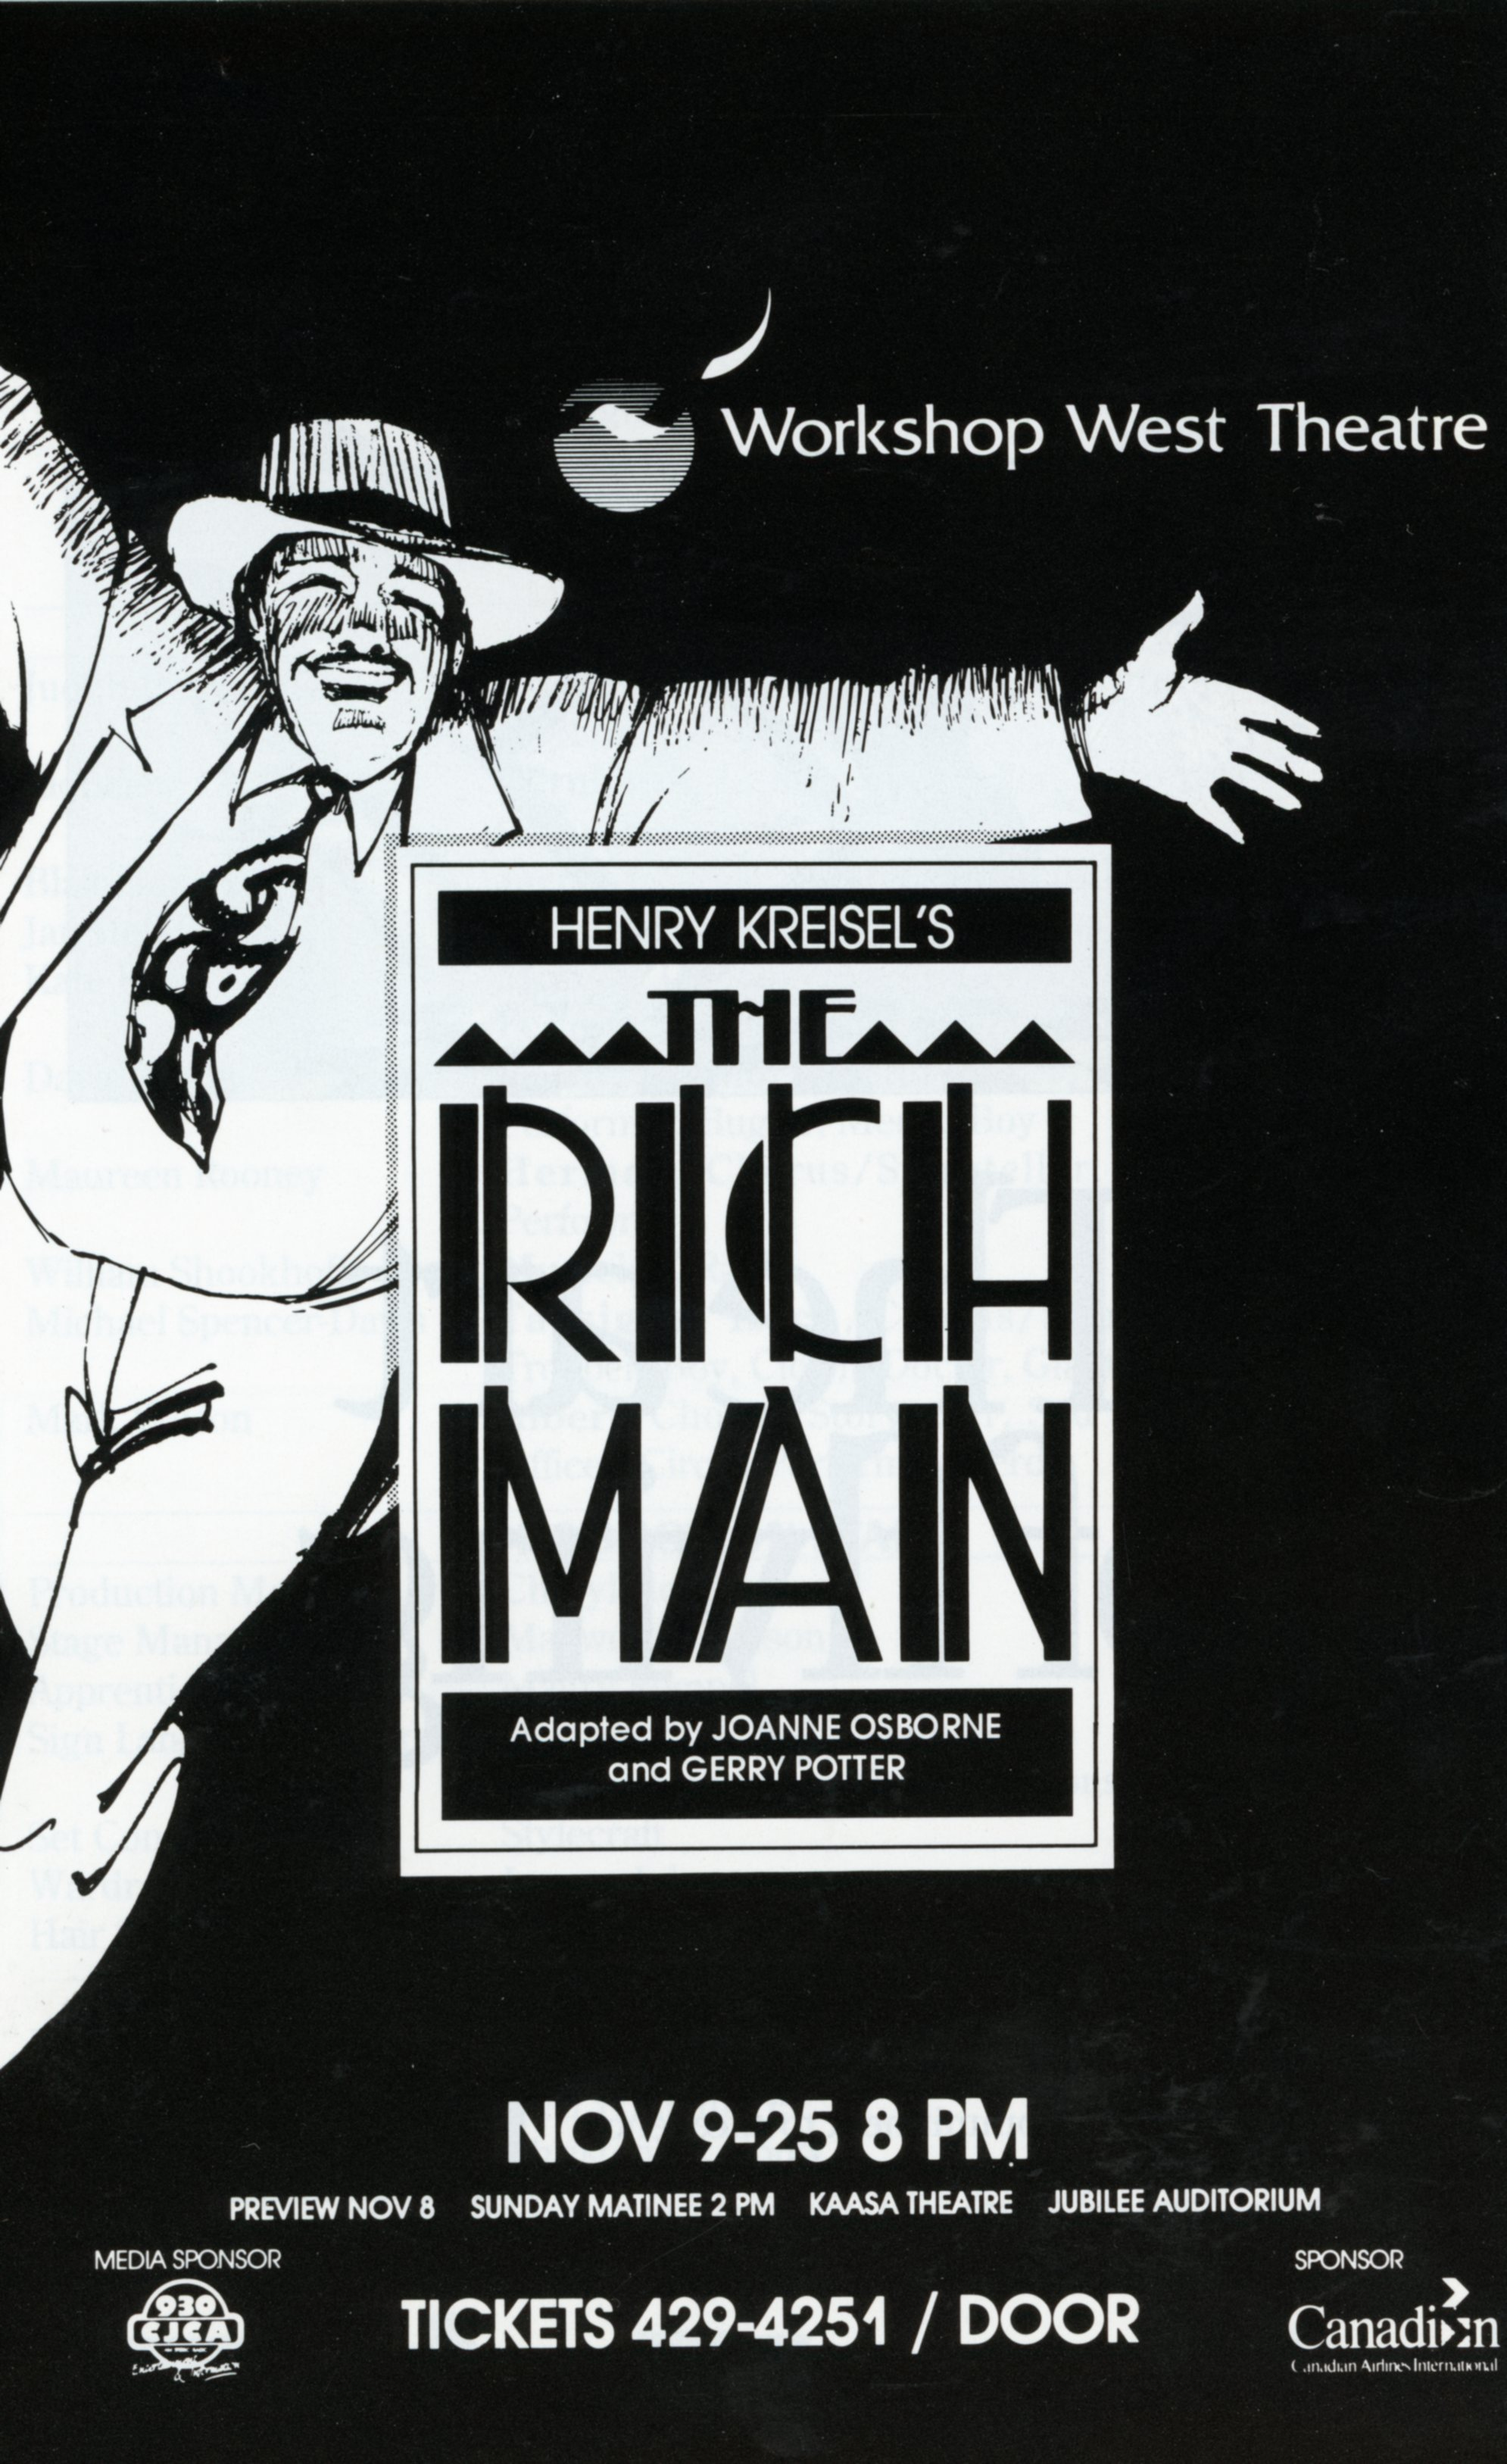 The Rich Man (November,1990)-Program Cover JPEG.jpg